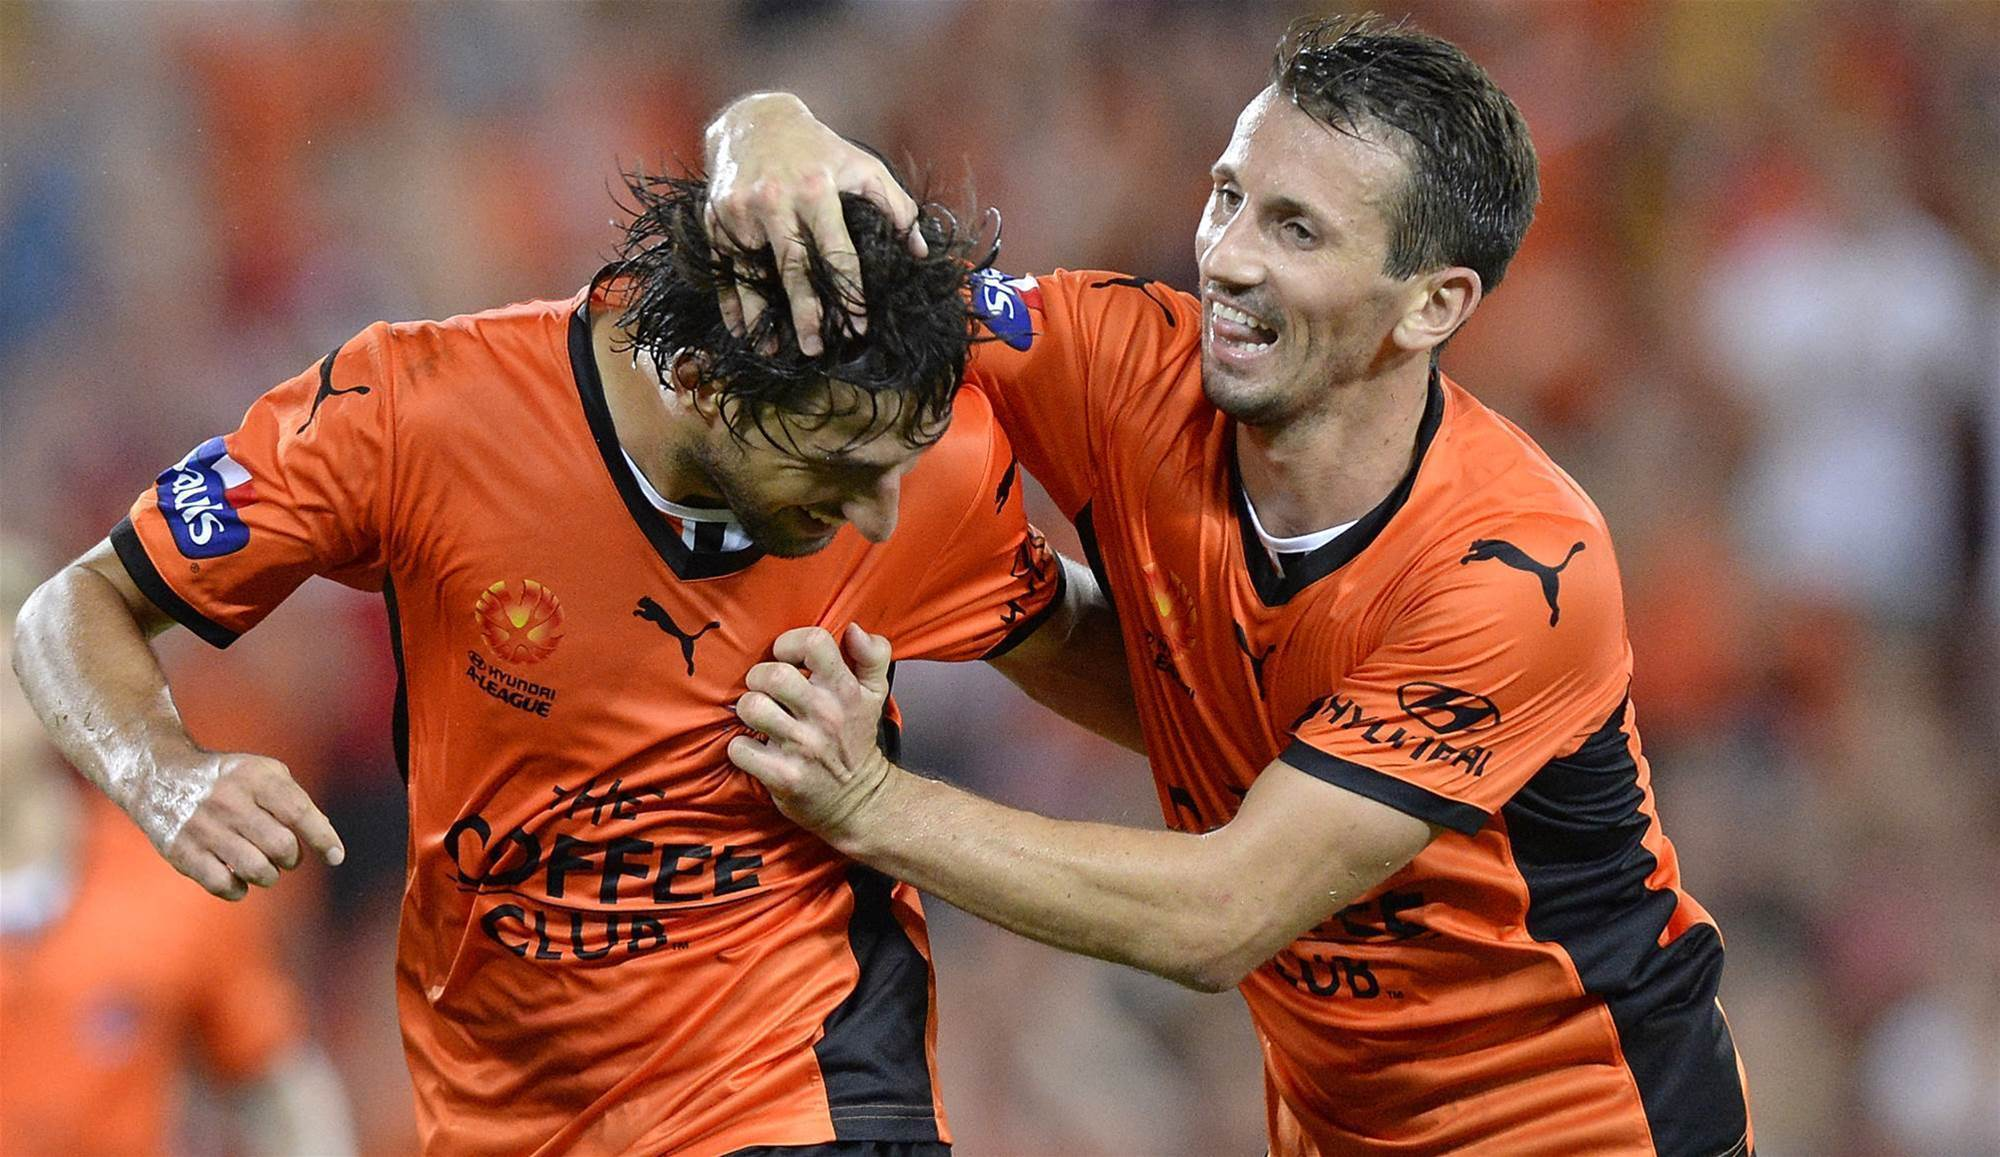 Reports: Former A-League midfielder Liam Miller diagnosed with cancer